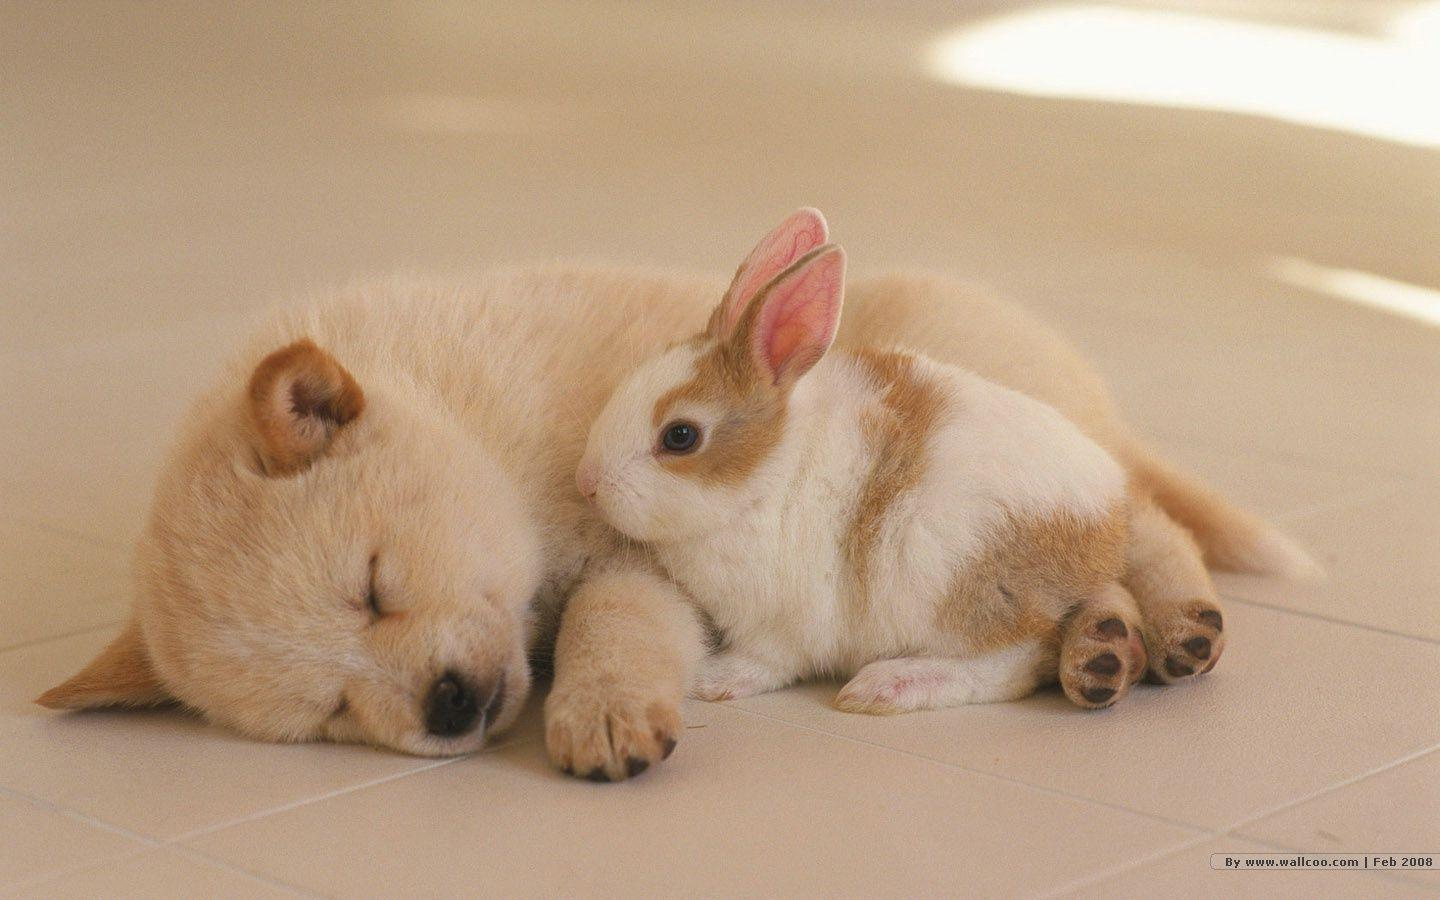 1440*900 Lovely Puppy wallpapers / Lovely Puppies Photos 1440x900 ...